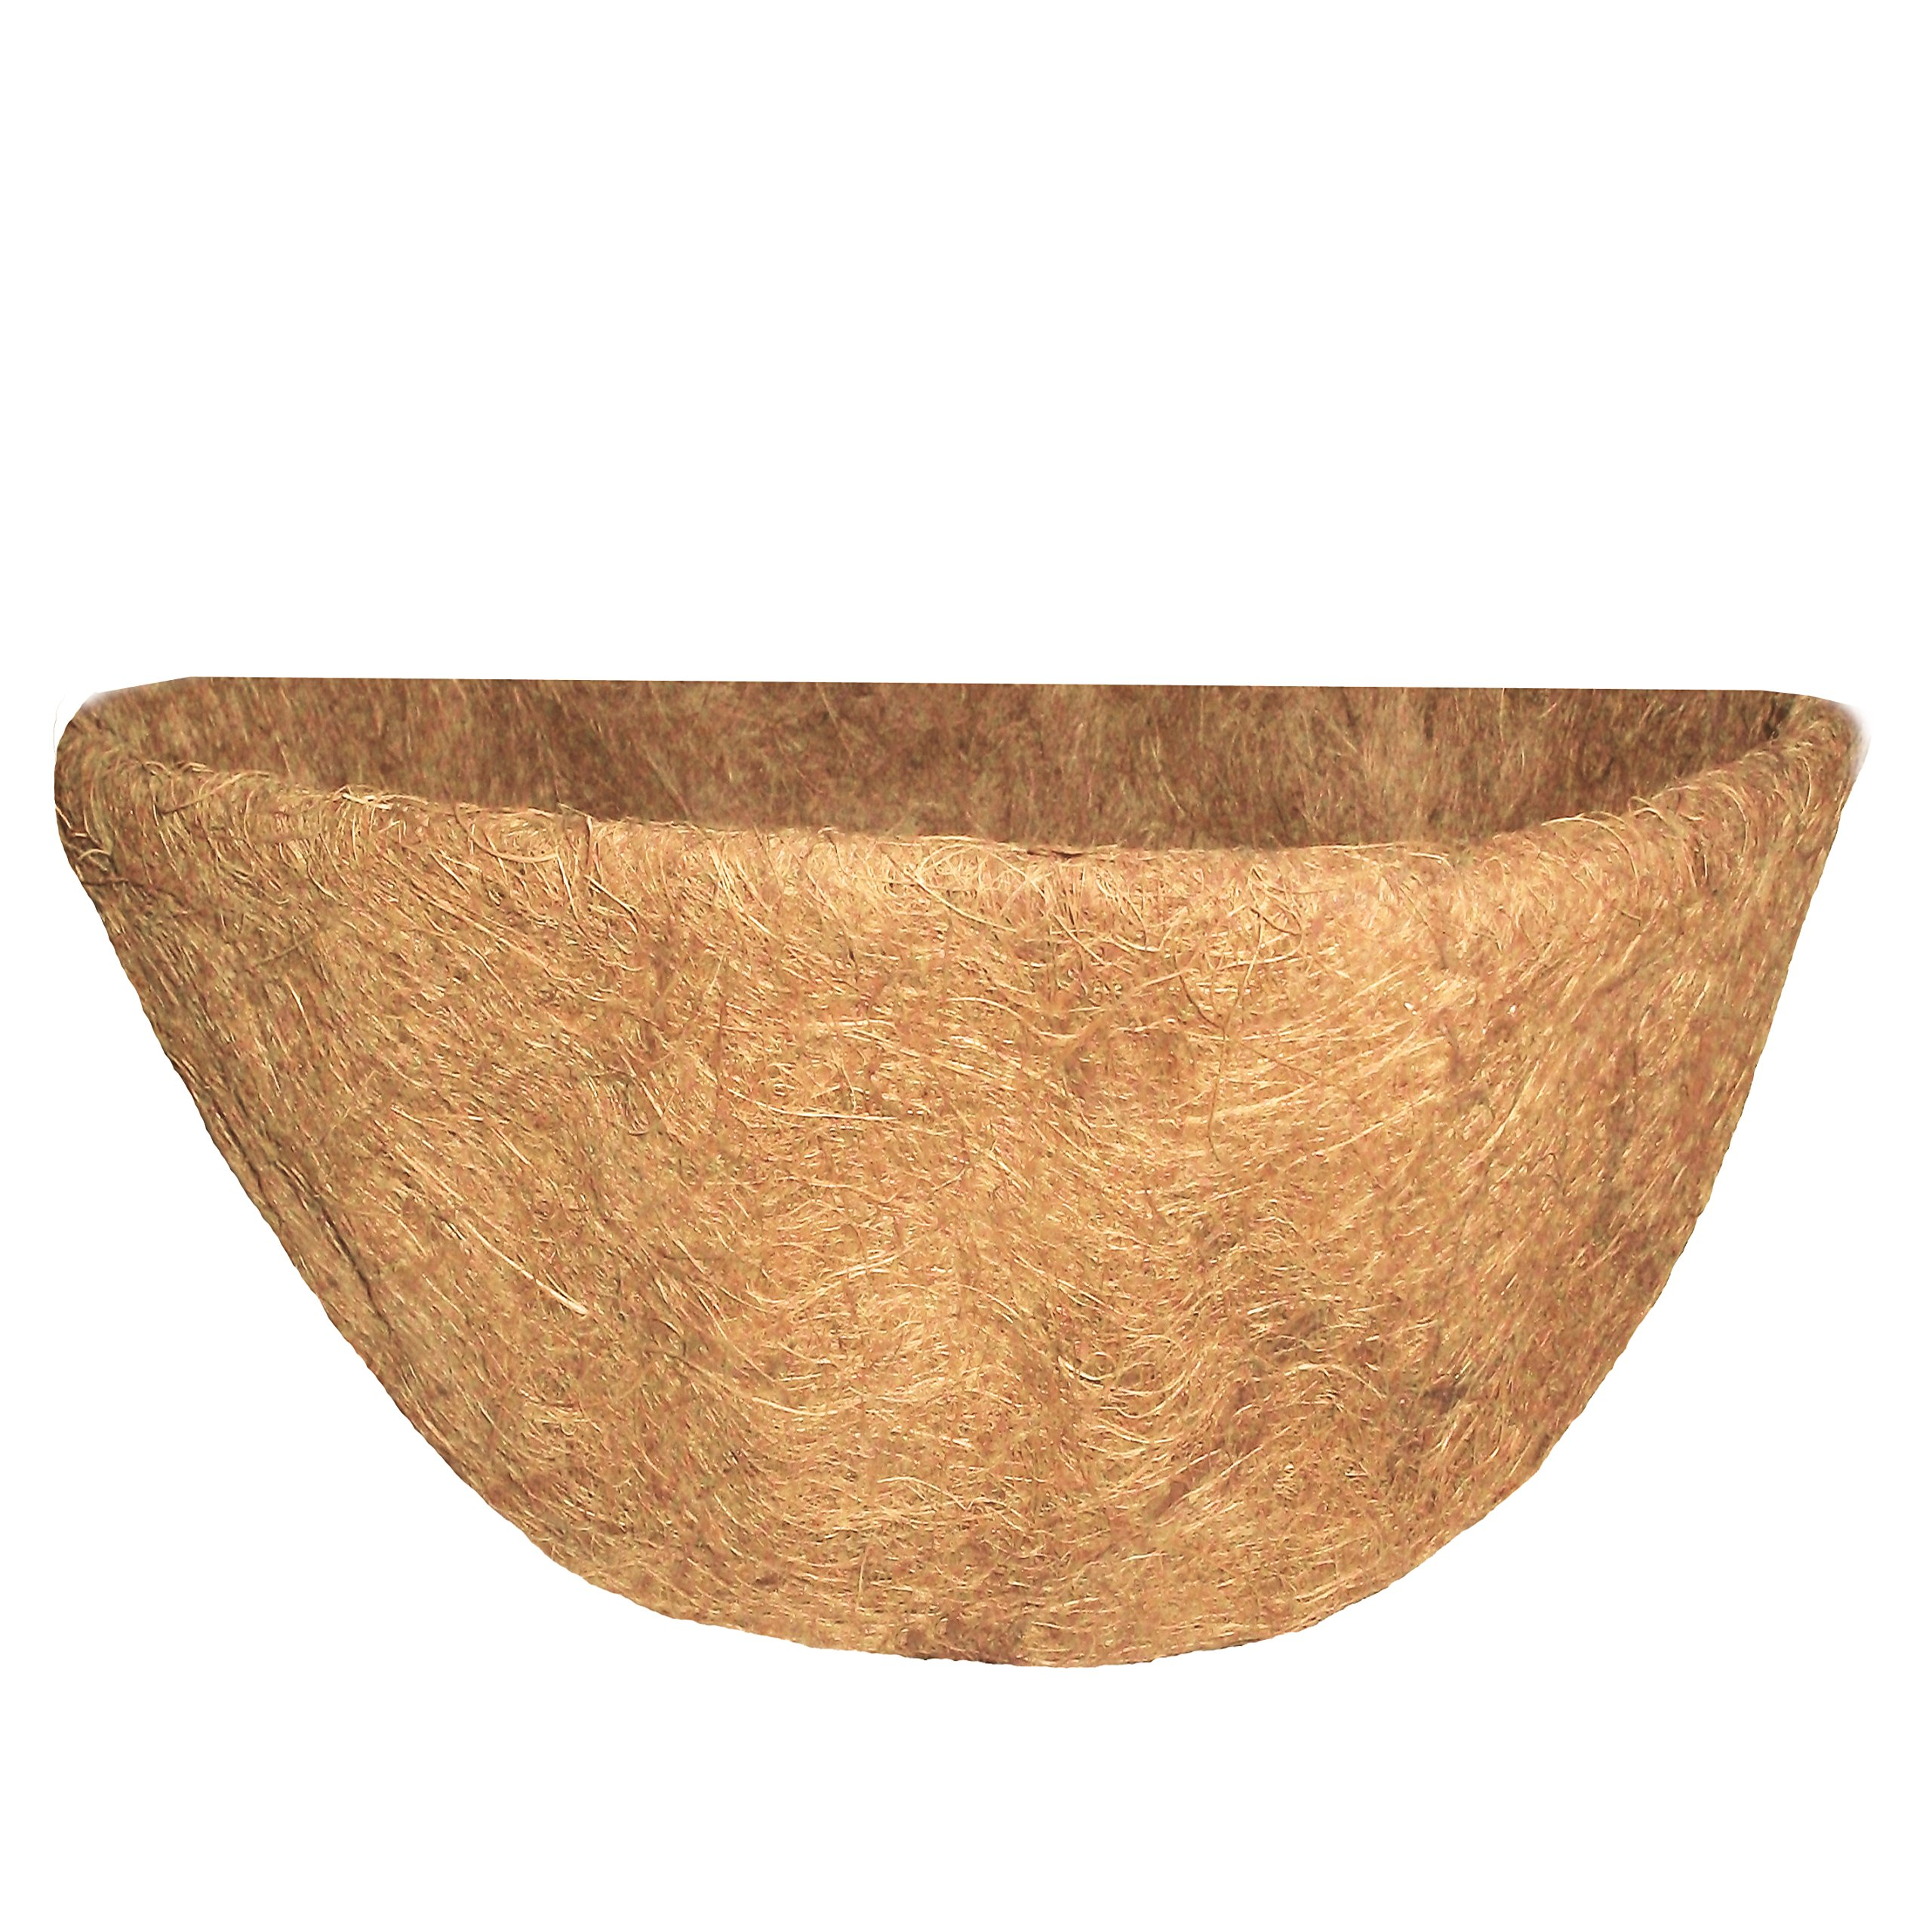 Grower Select Coco Liner for 18-inch Wall Basket Planters